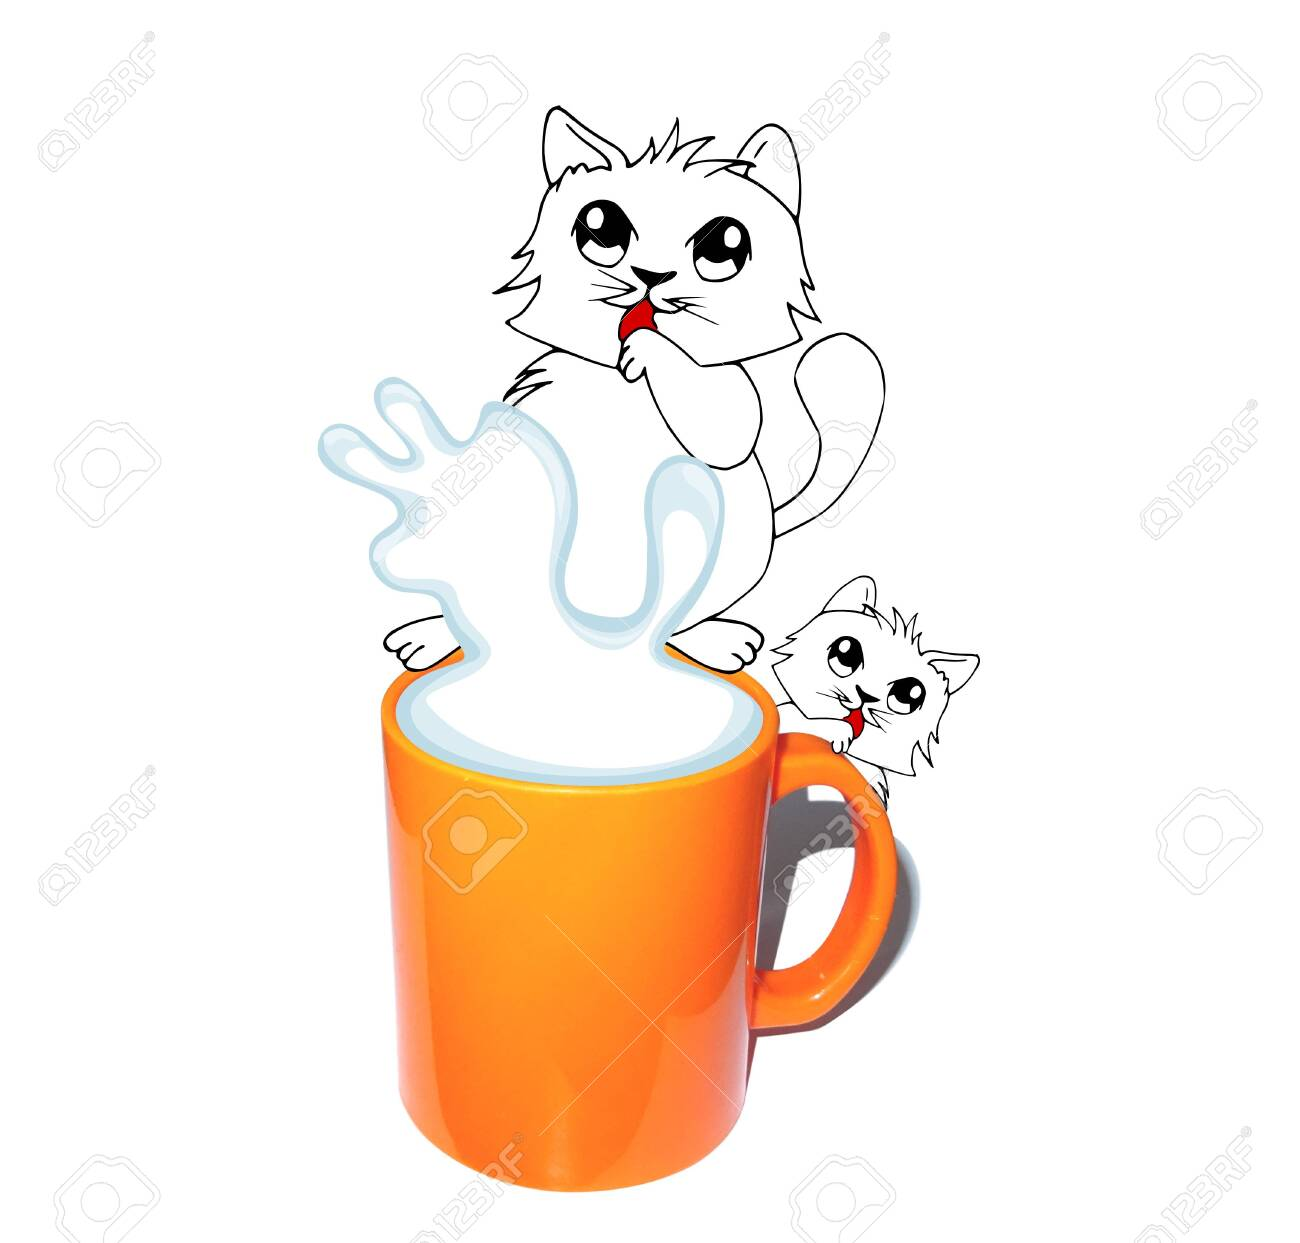 Funny White Cat With A Big Mug Of Milk And Small Kitty Drawing Stock Photo Picture And Royalty Free Image Image 143430396